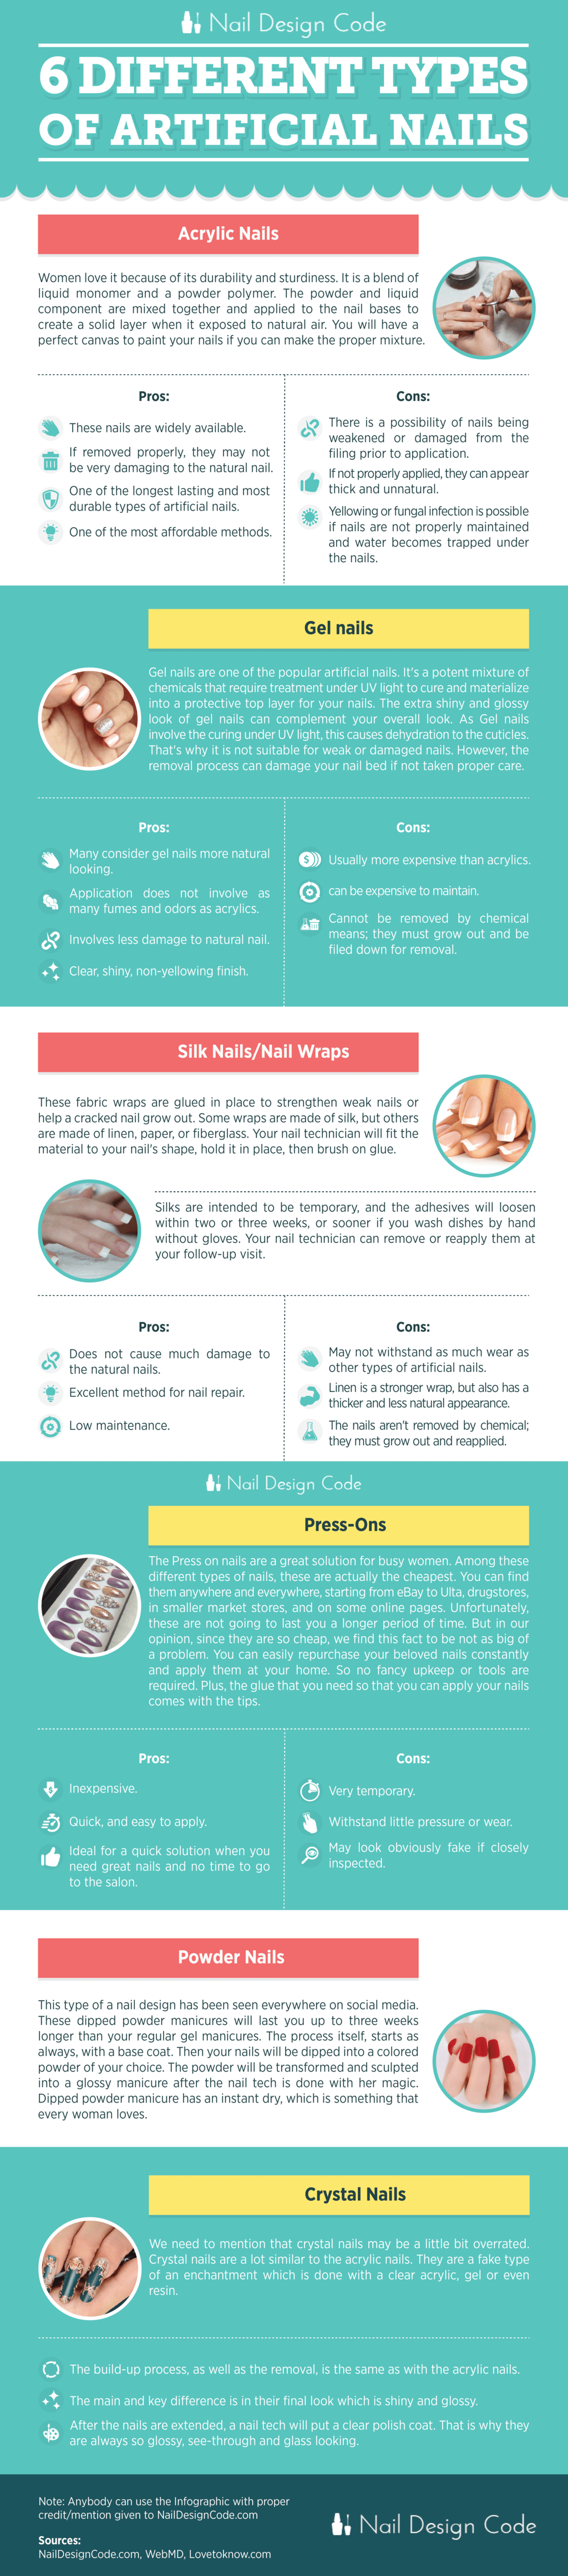 Artificial Nail Types Infographic